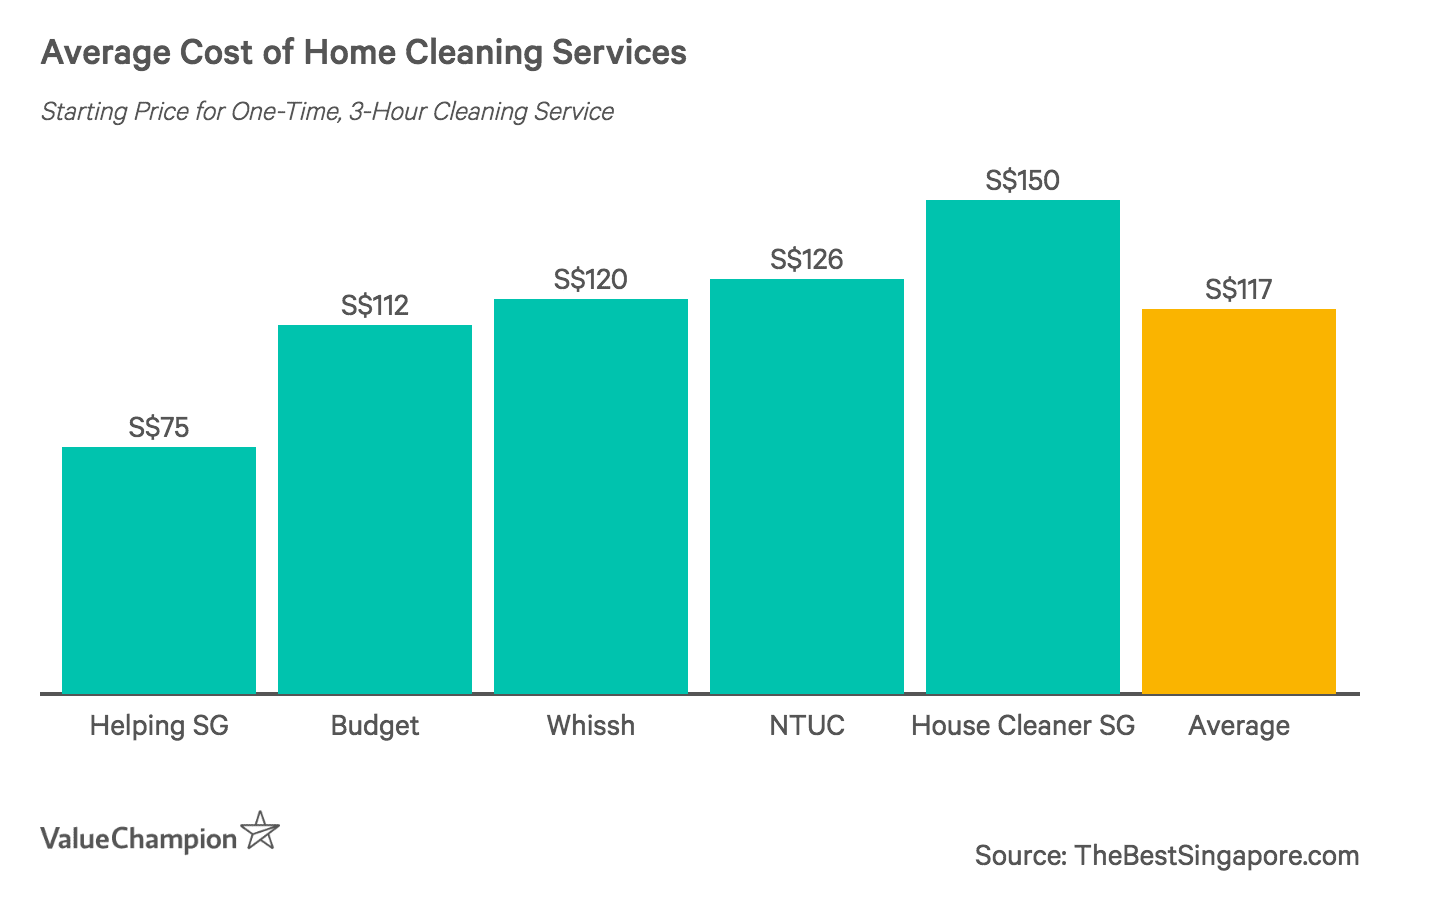 Average Cost of Home Cleaning Services